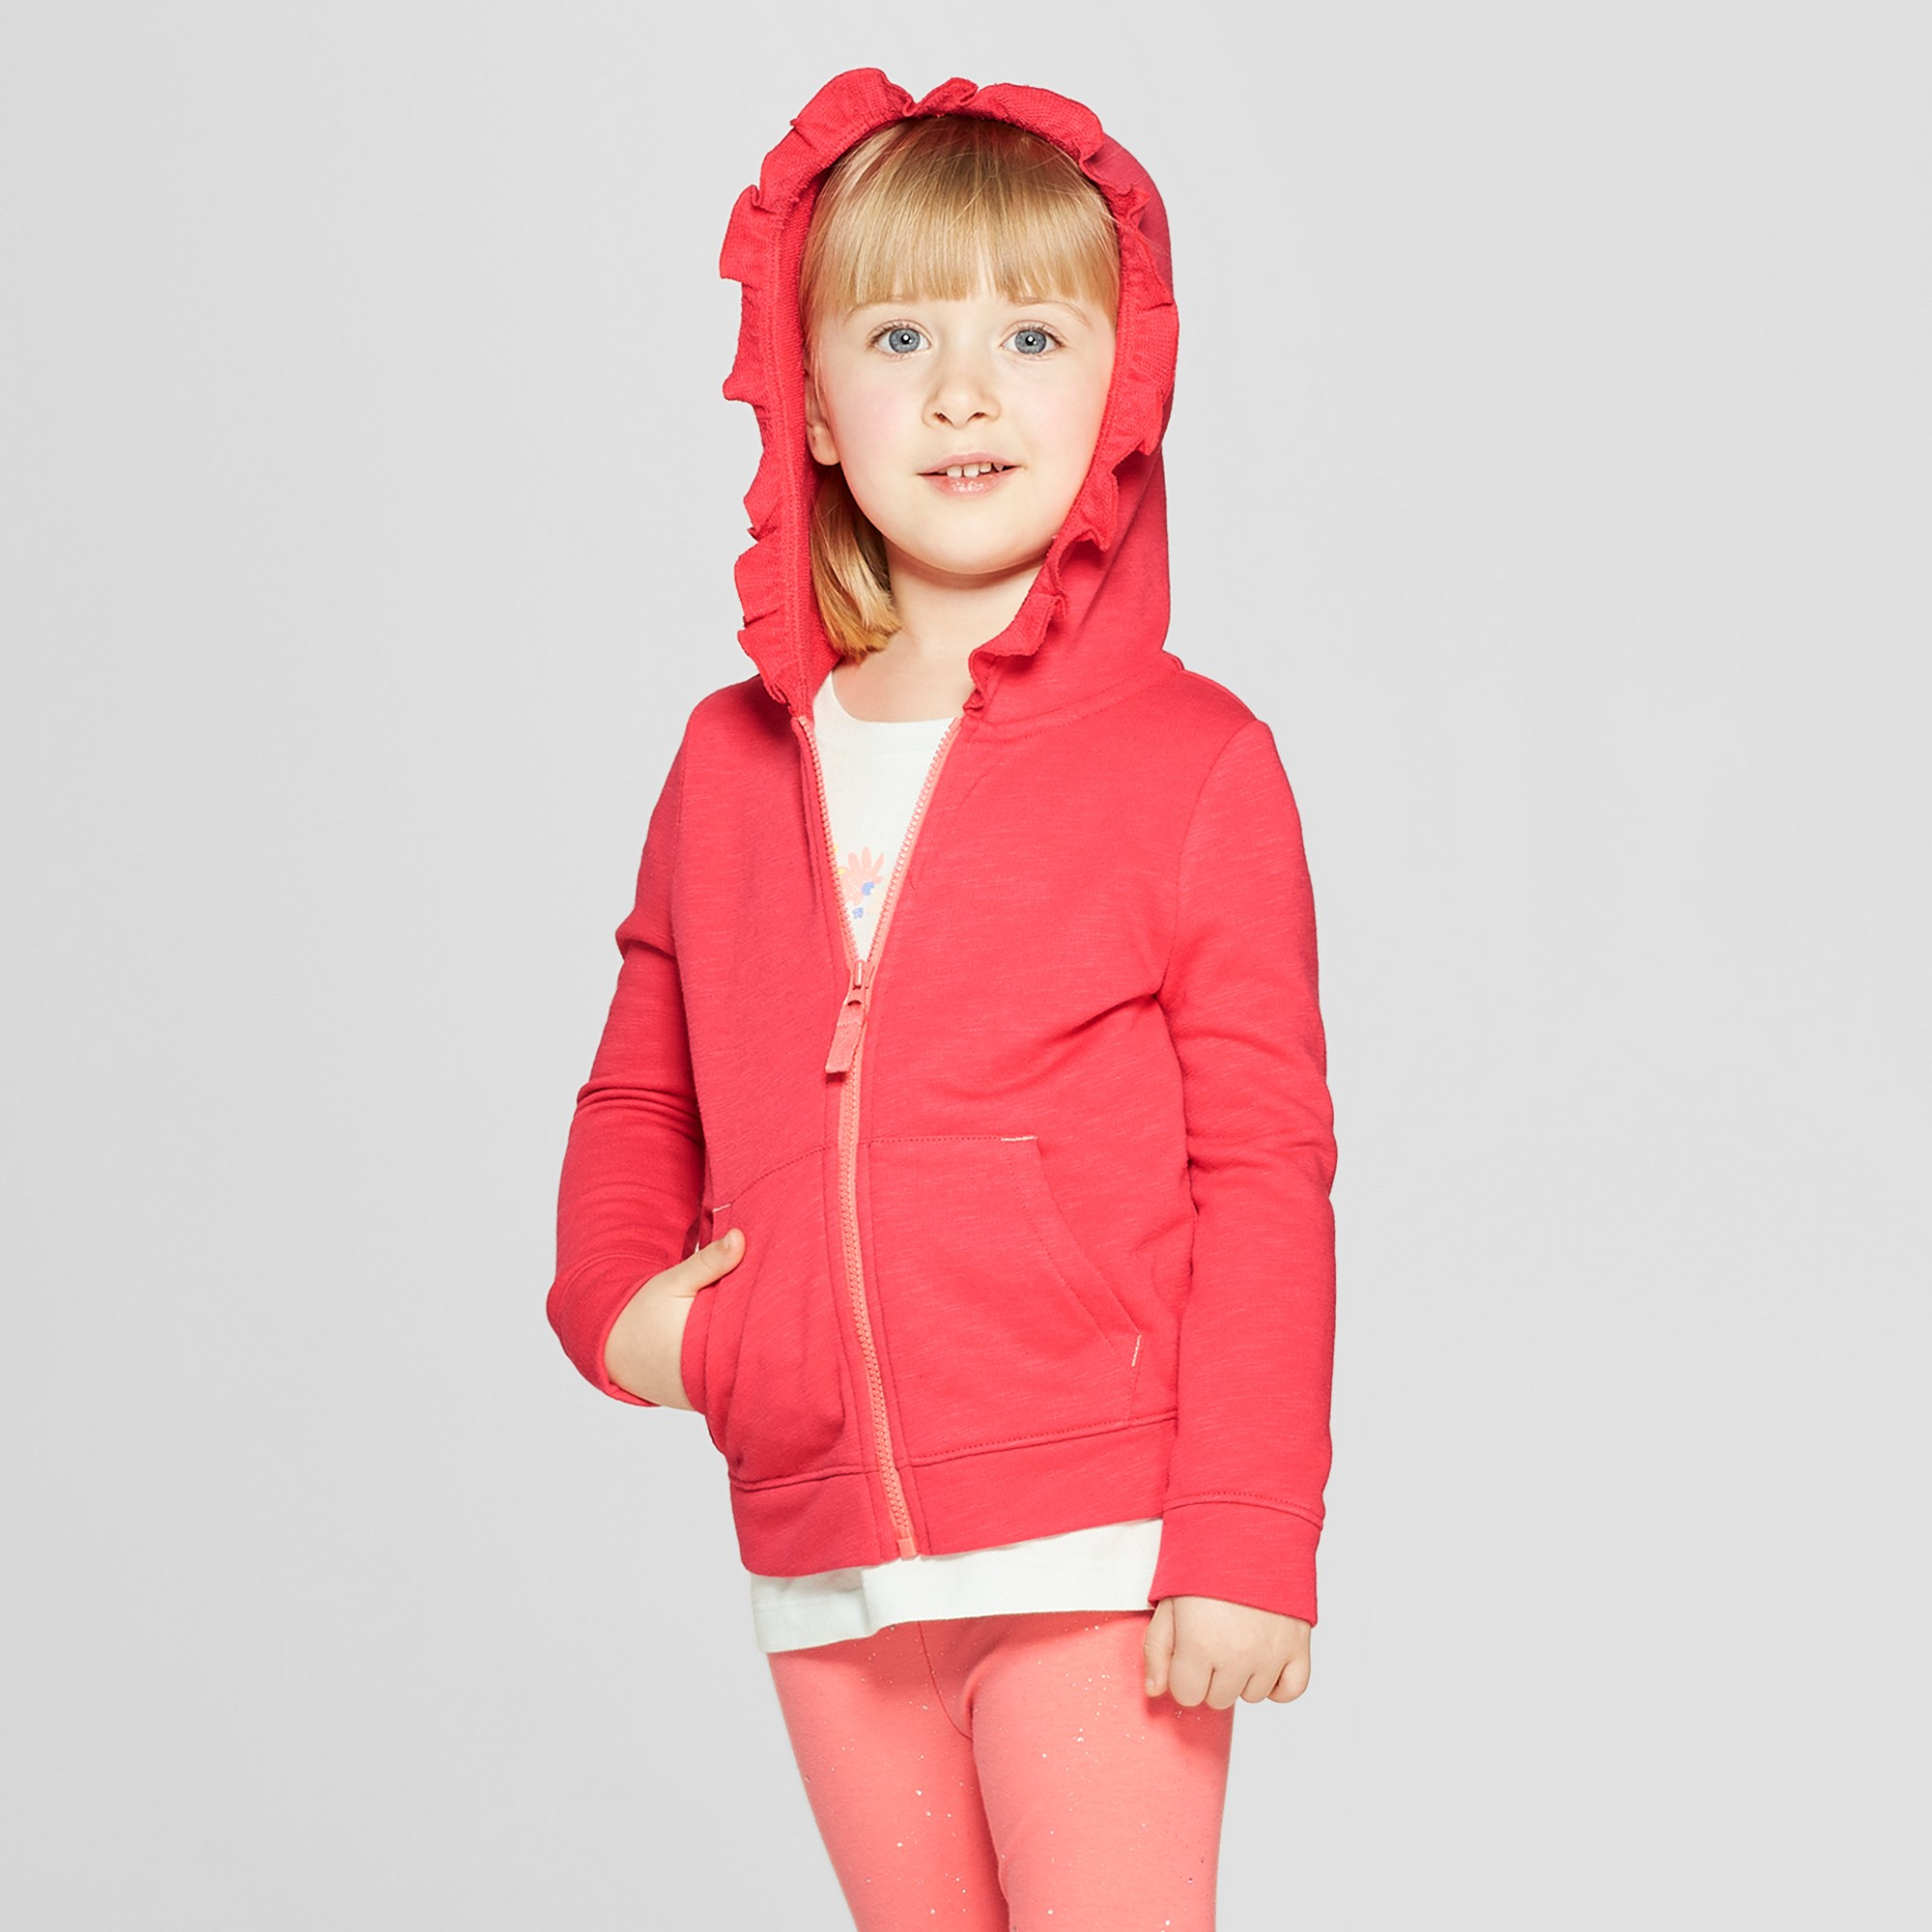 Toddler Girls' Hoodie Sweatshirt - Cat & Jack Coral 18M, Orange